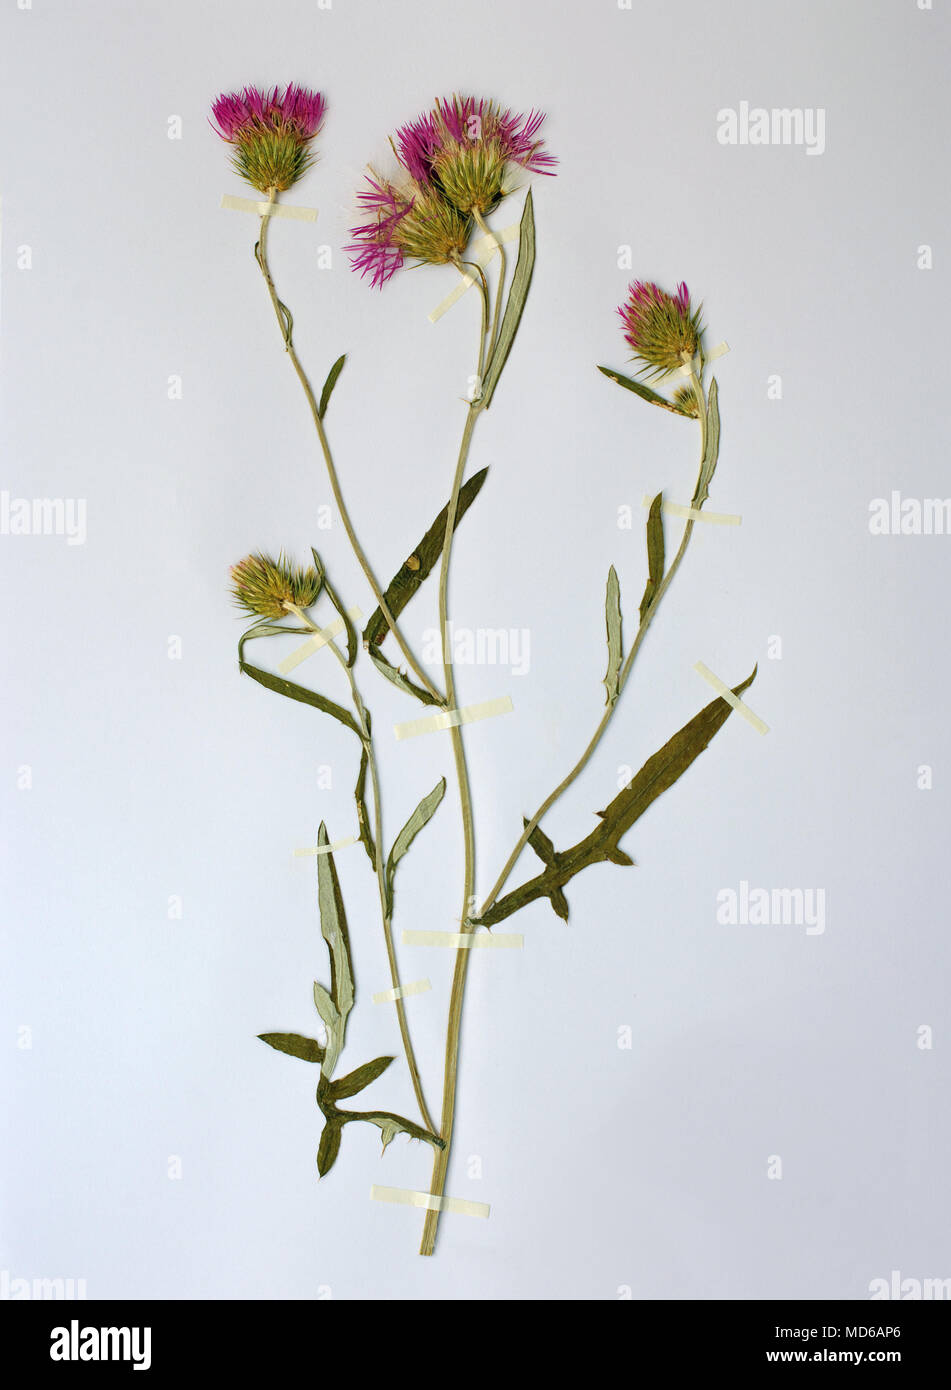 Herbarium sheet with Galactites tomentosa, the Purpure milk thistle or Boar thistle, family Asteraceae (Compositae) - Stock Image